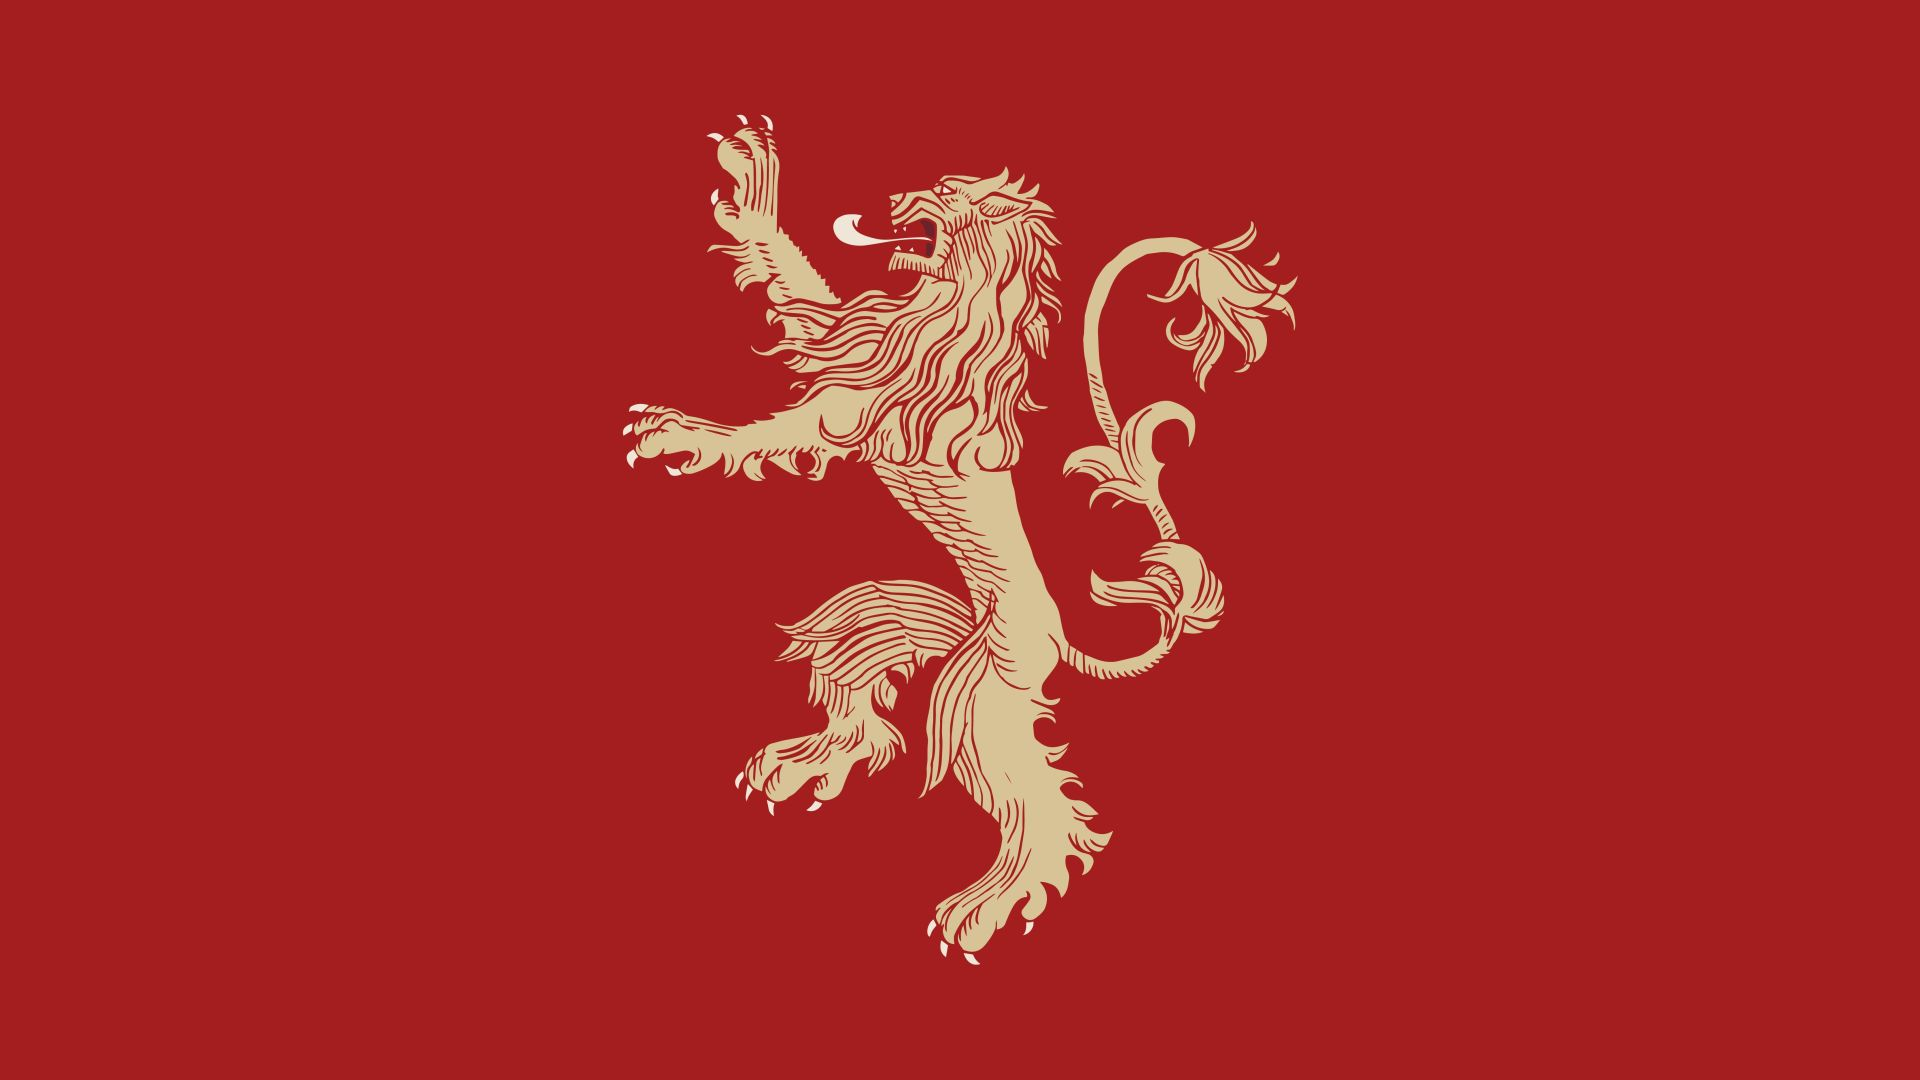 Game of Thrones Lannister House Minimalist